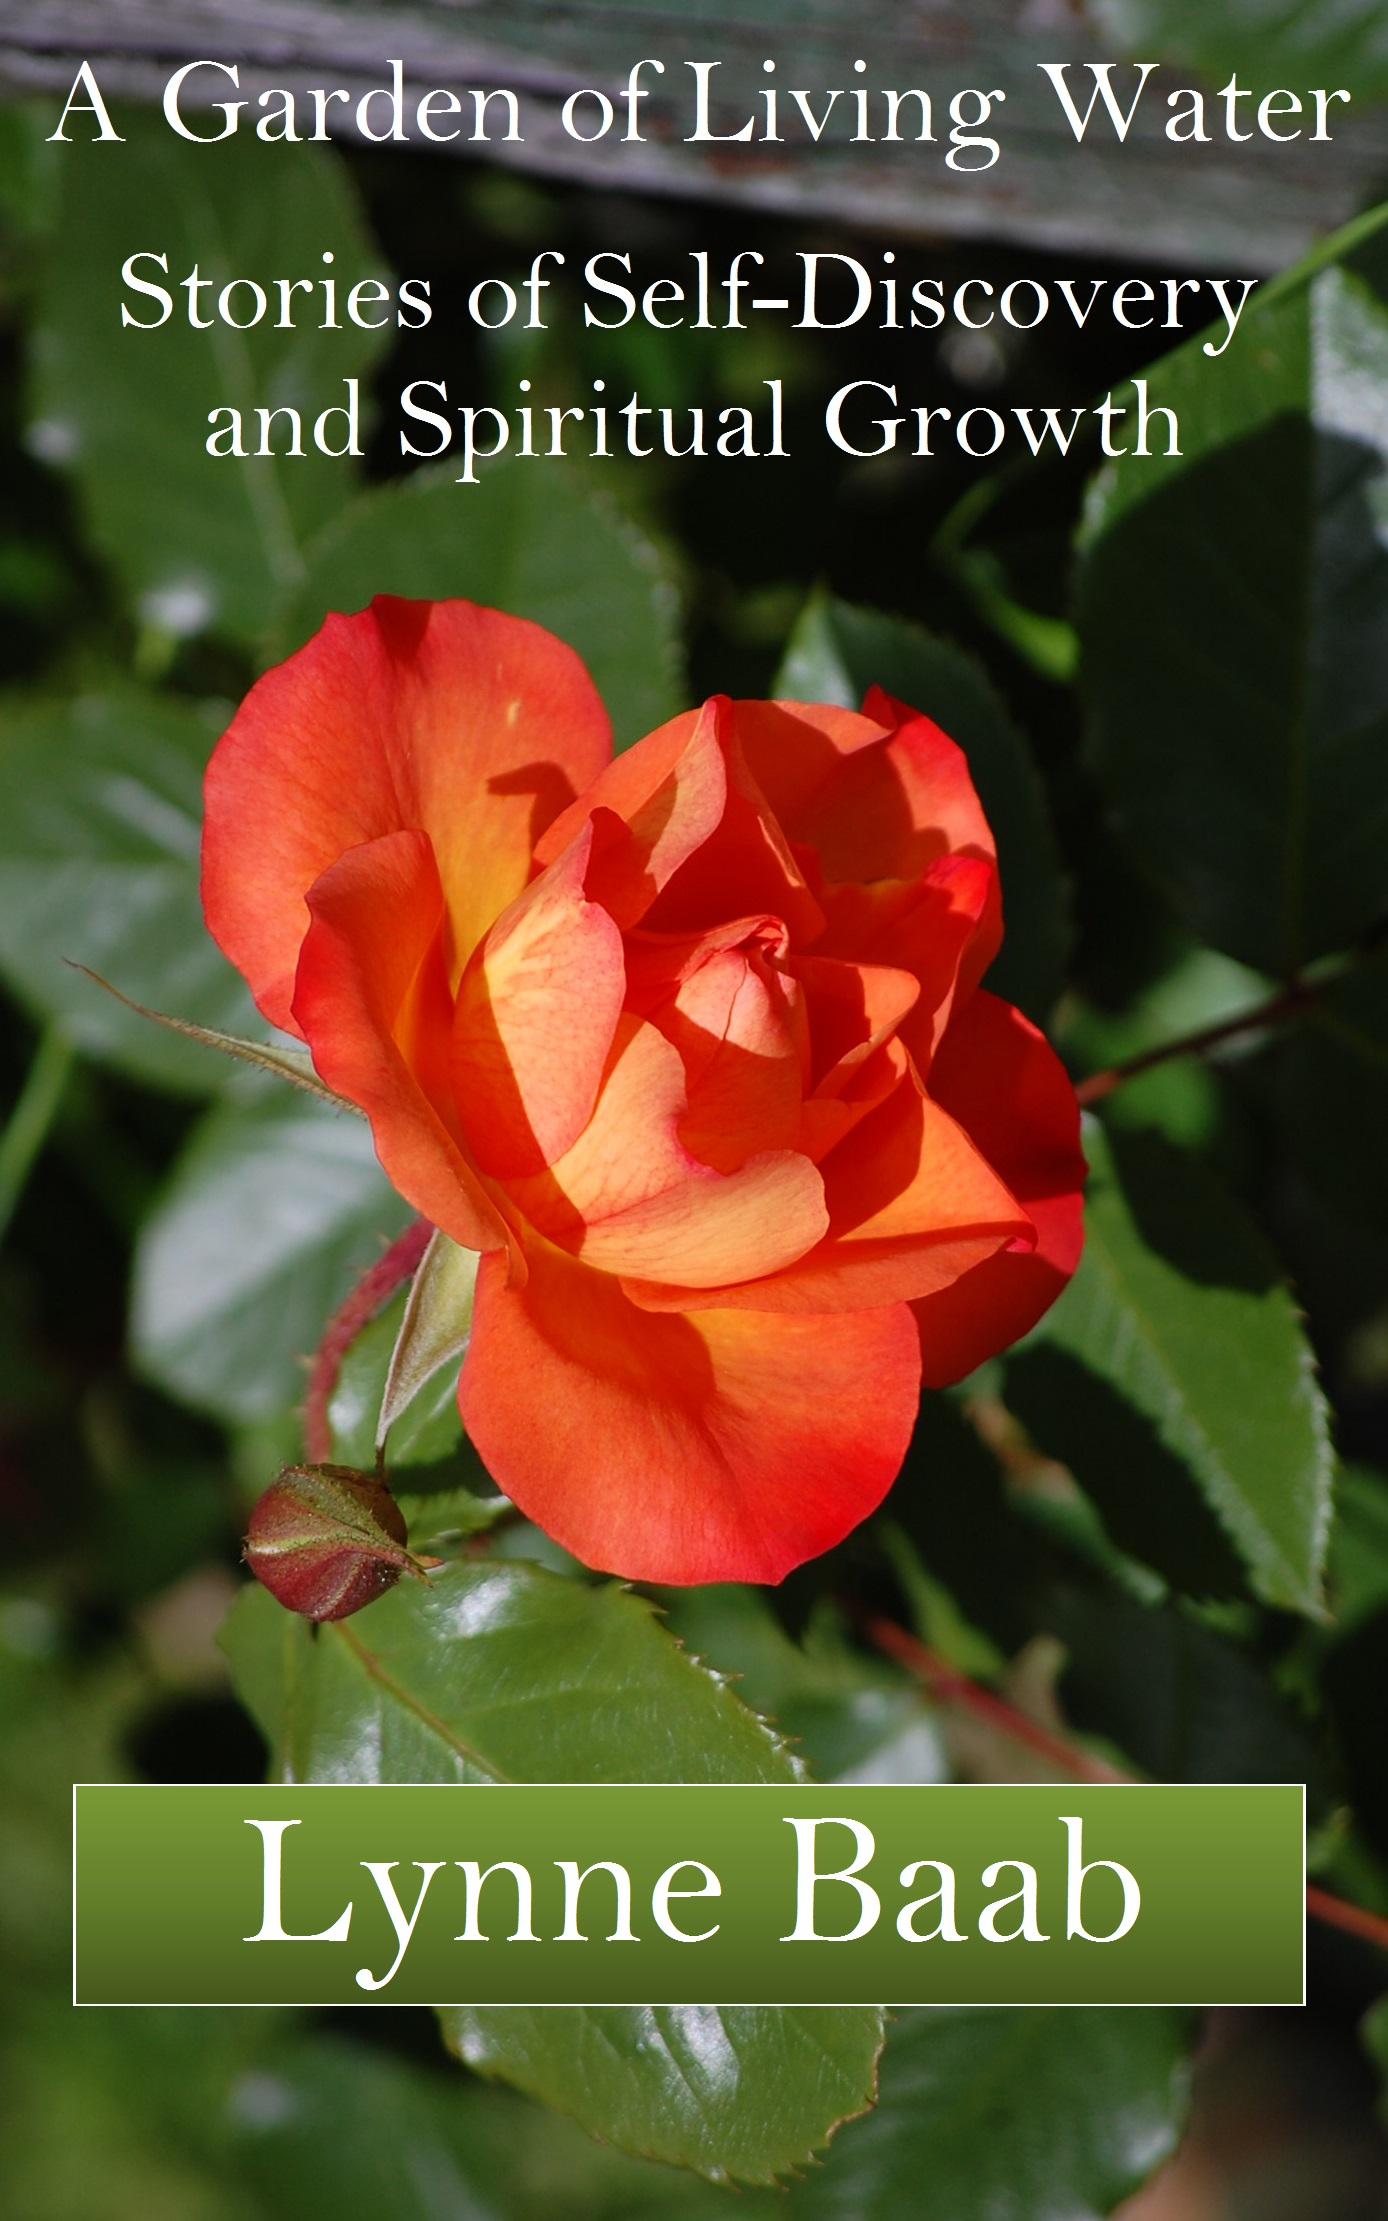 A Garden of Living Water: Stories of Self-Discovery and Spiritual Growth